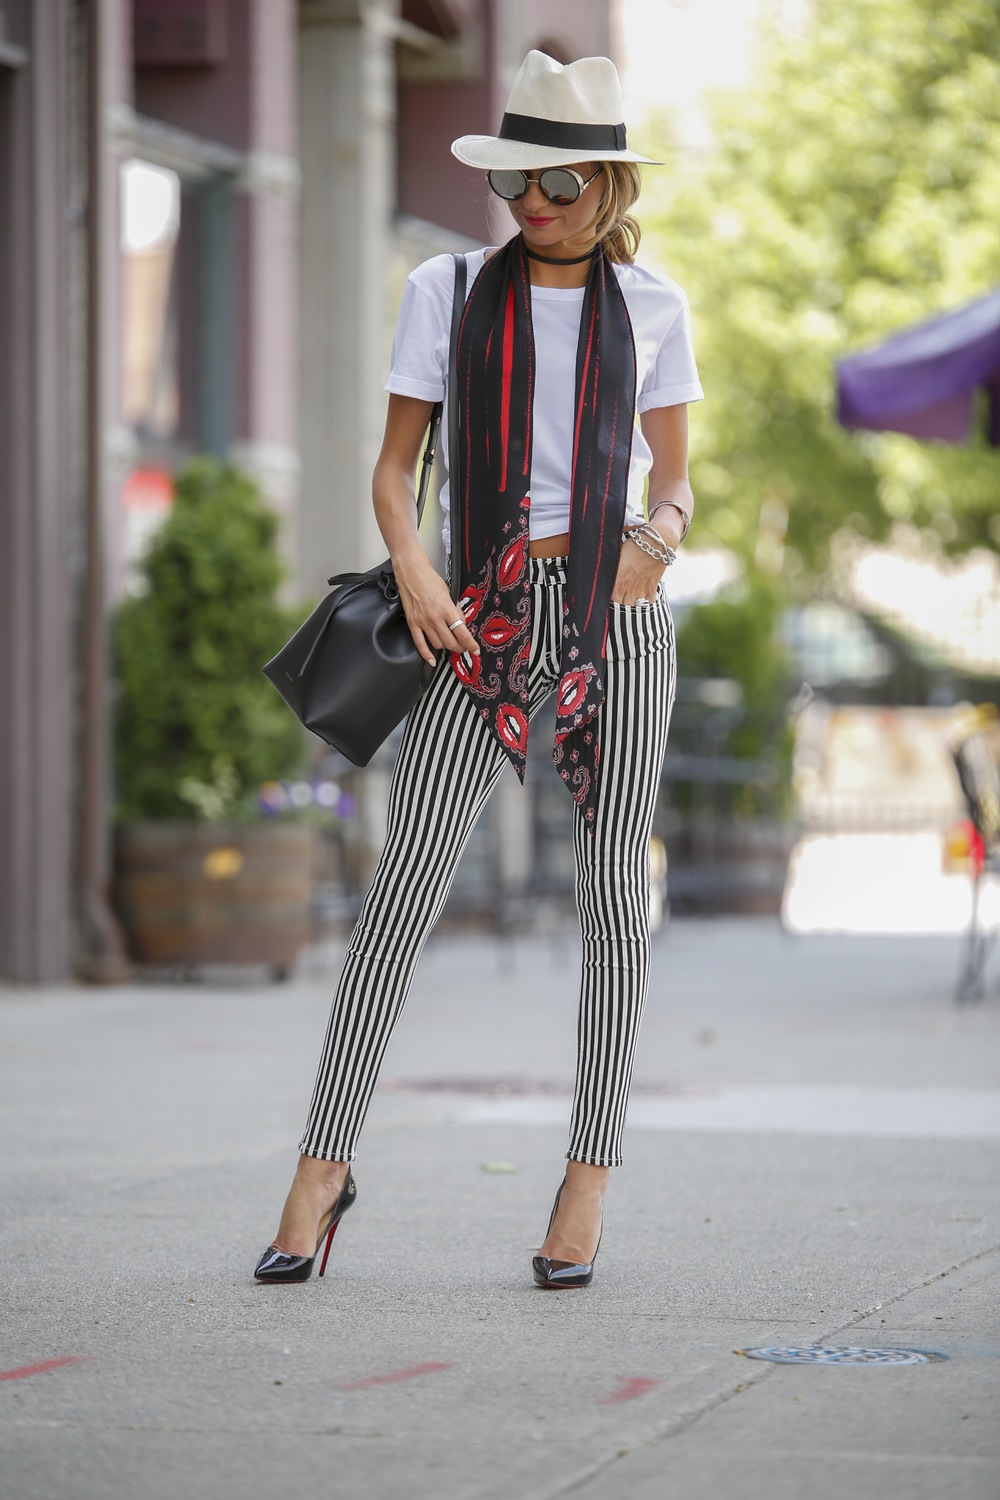 J.Crew fedora, Rockins skinny scarf, white tee, Rag and Bone jeans, Christian Louboutin pumps, and Mansur Gavriel bag seen on streetstyle blogger Lauren Recchia from North of Manhattan